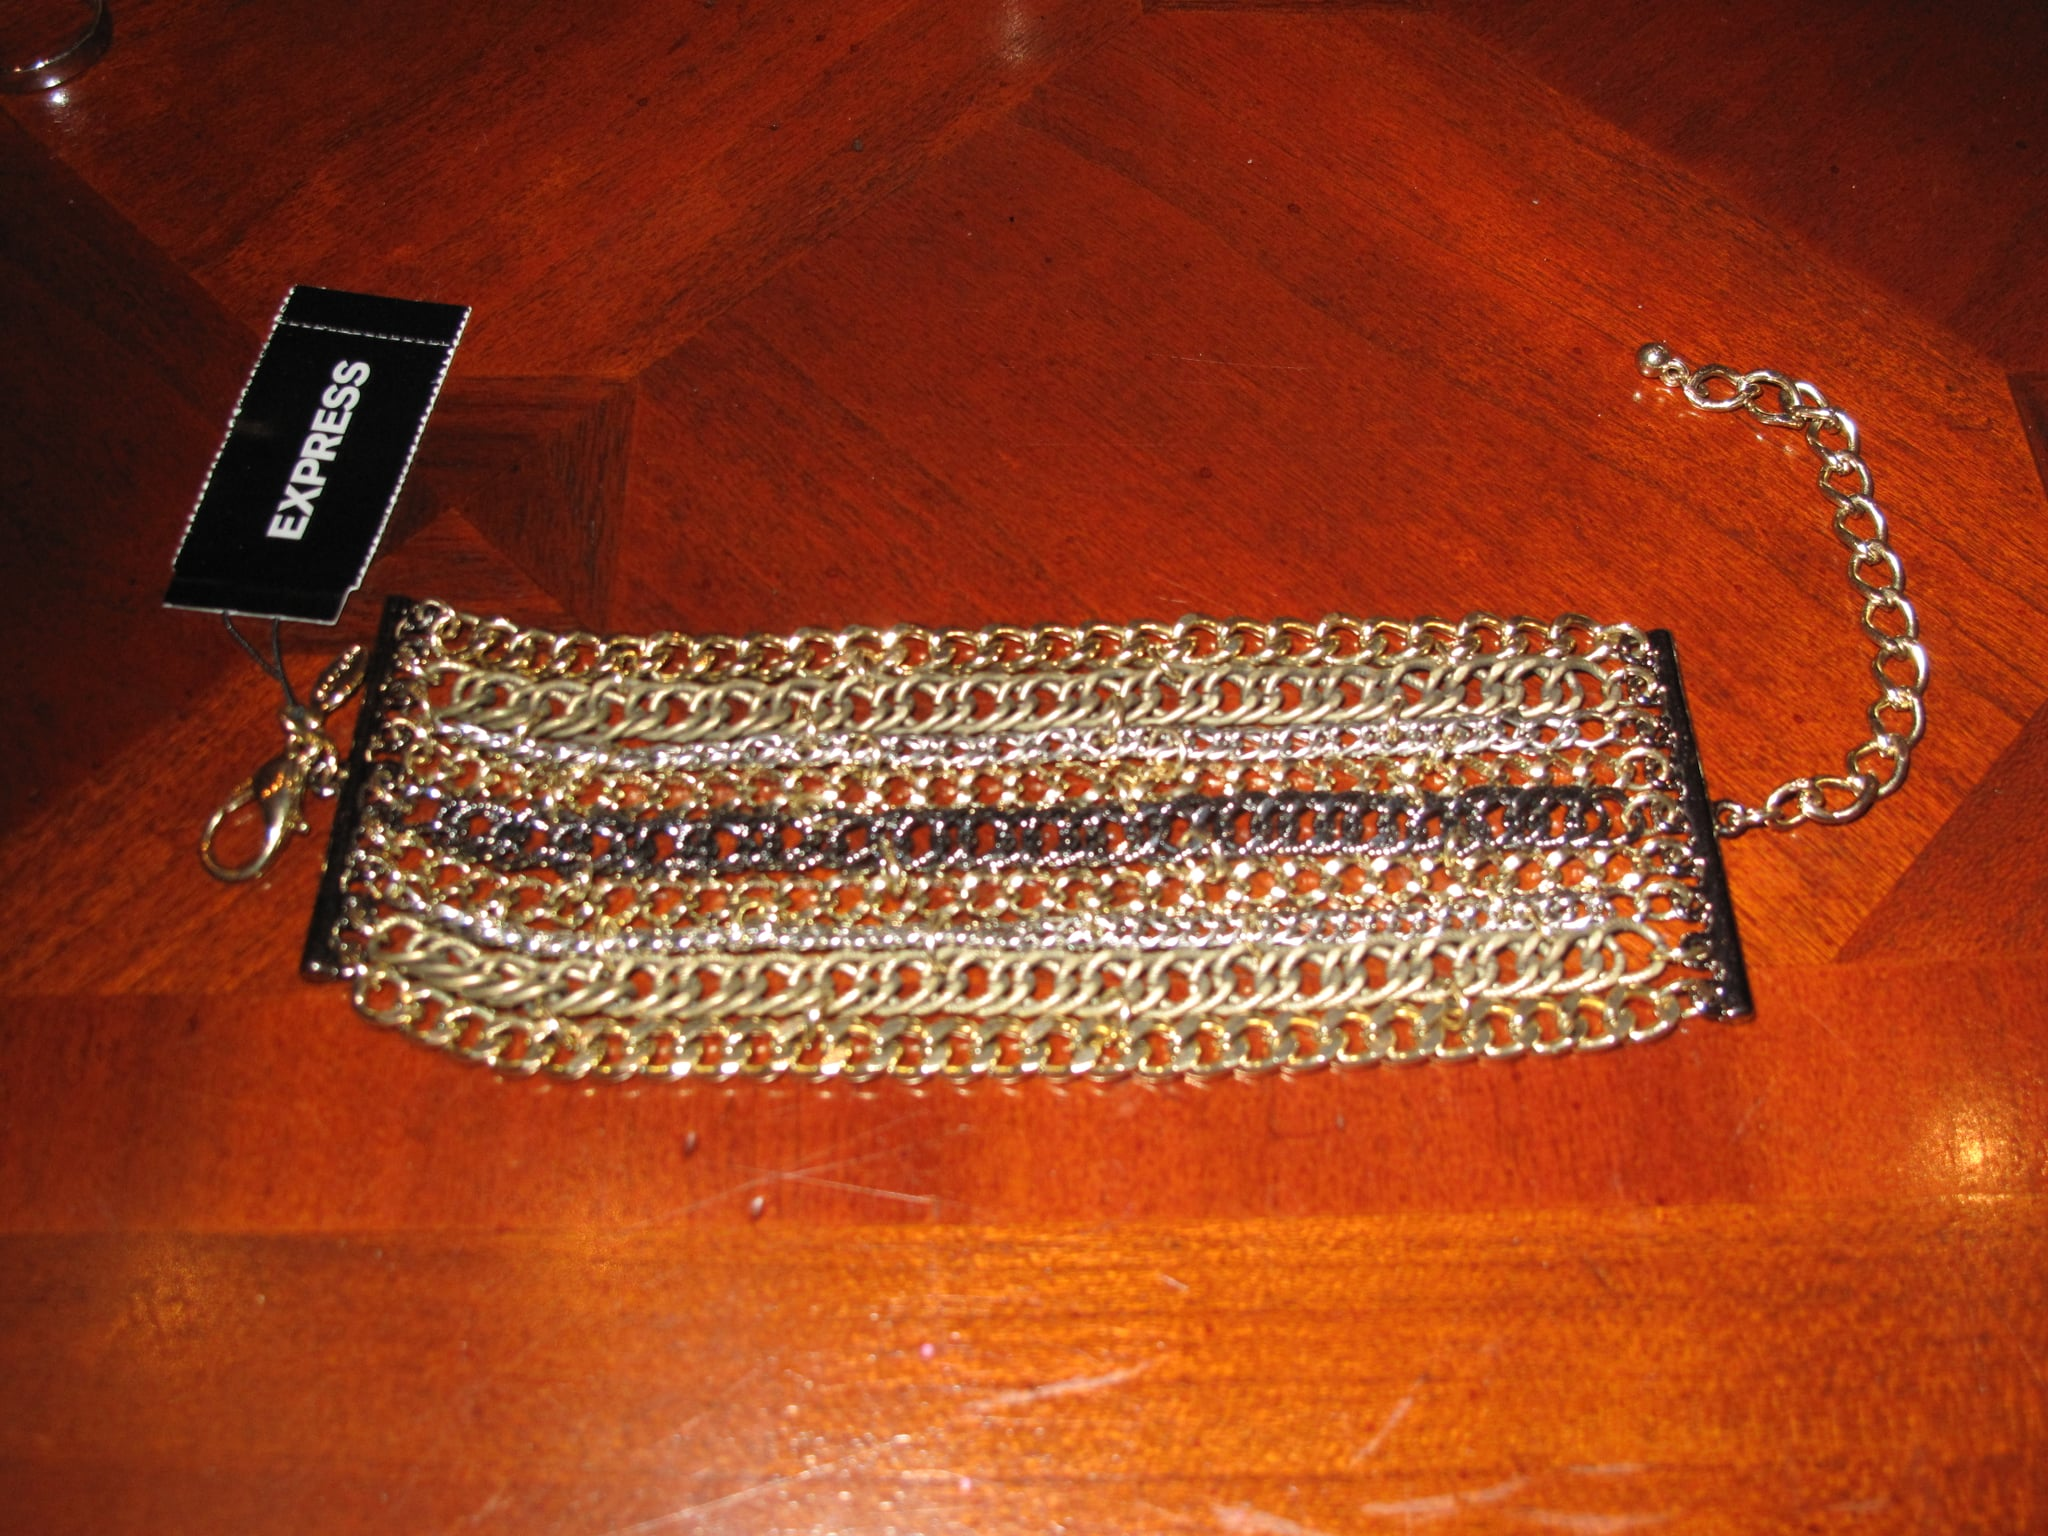 Chain bracelet from Express.